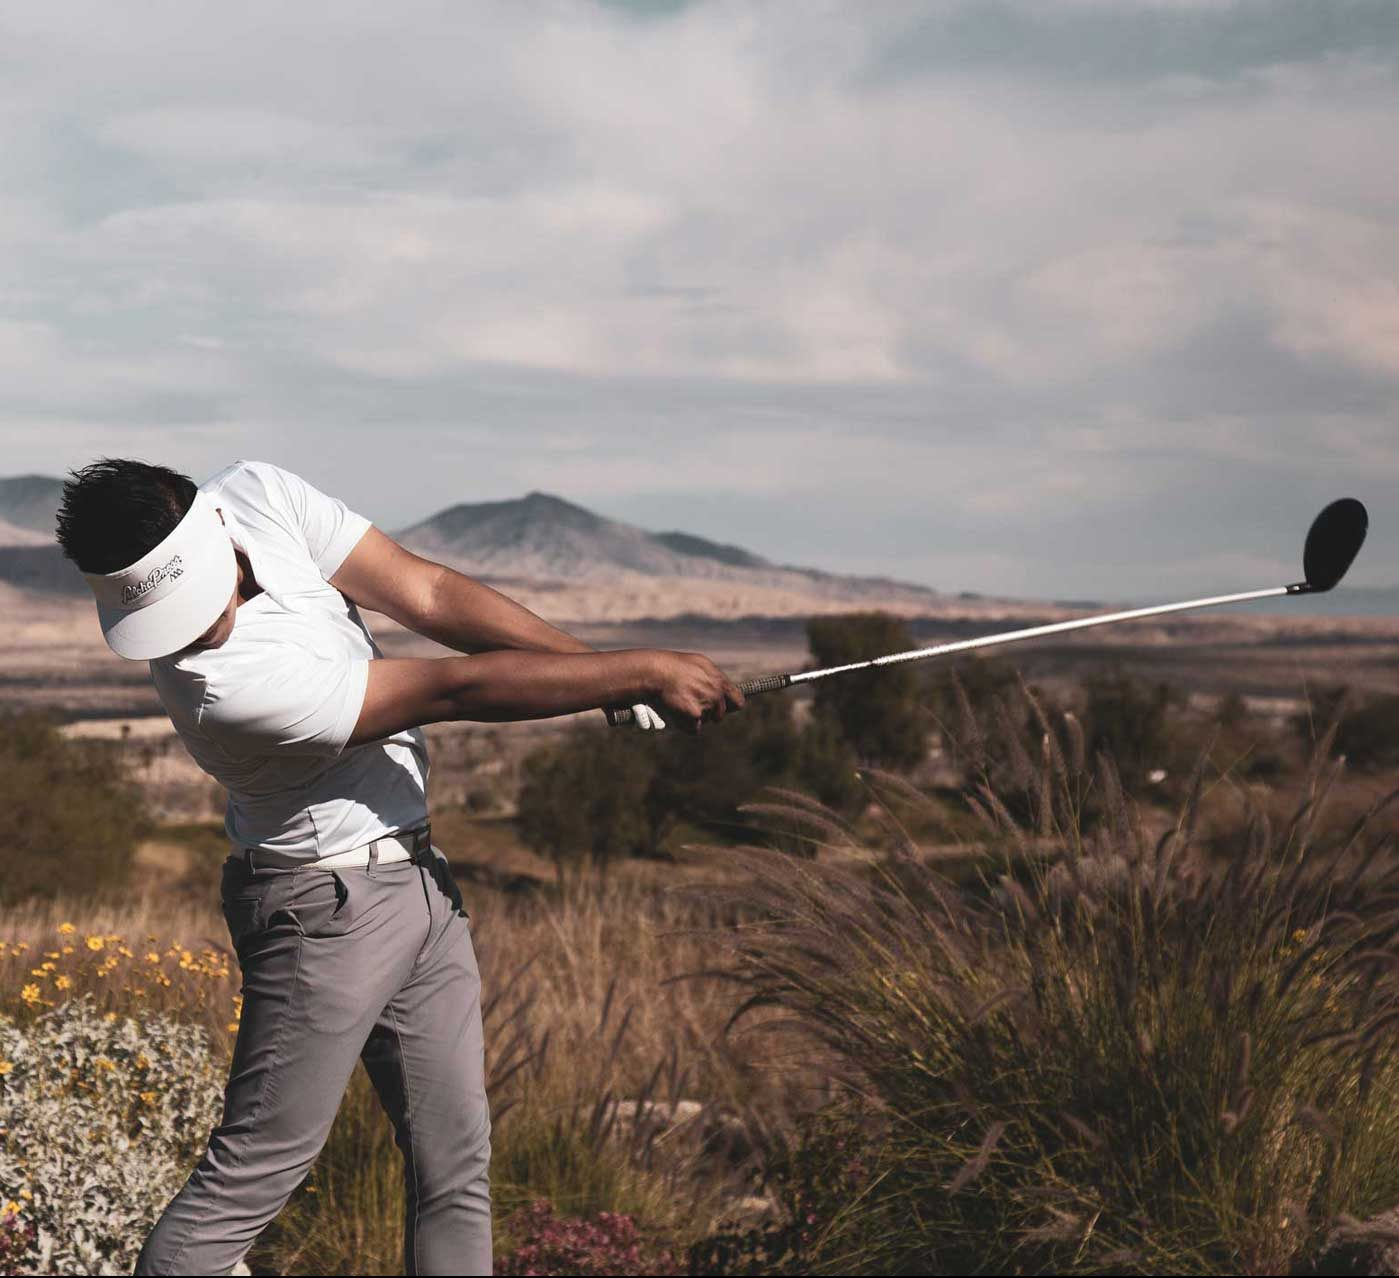 Golfer mid swing at Rams Hill Golf Course with the Anza Borrego Desert in the background